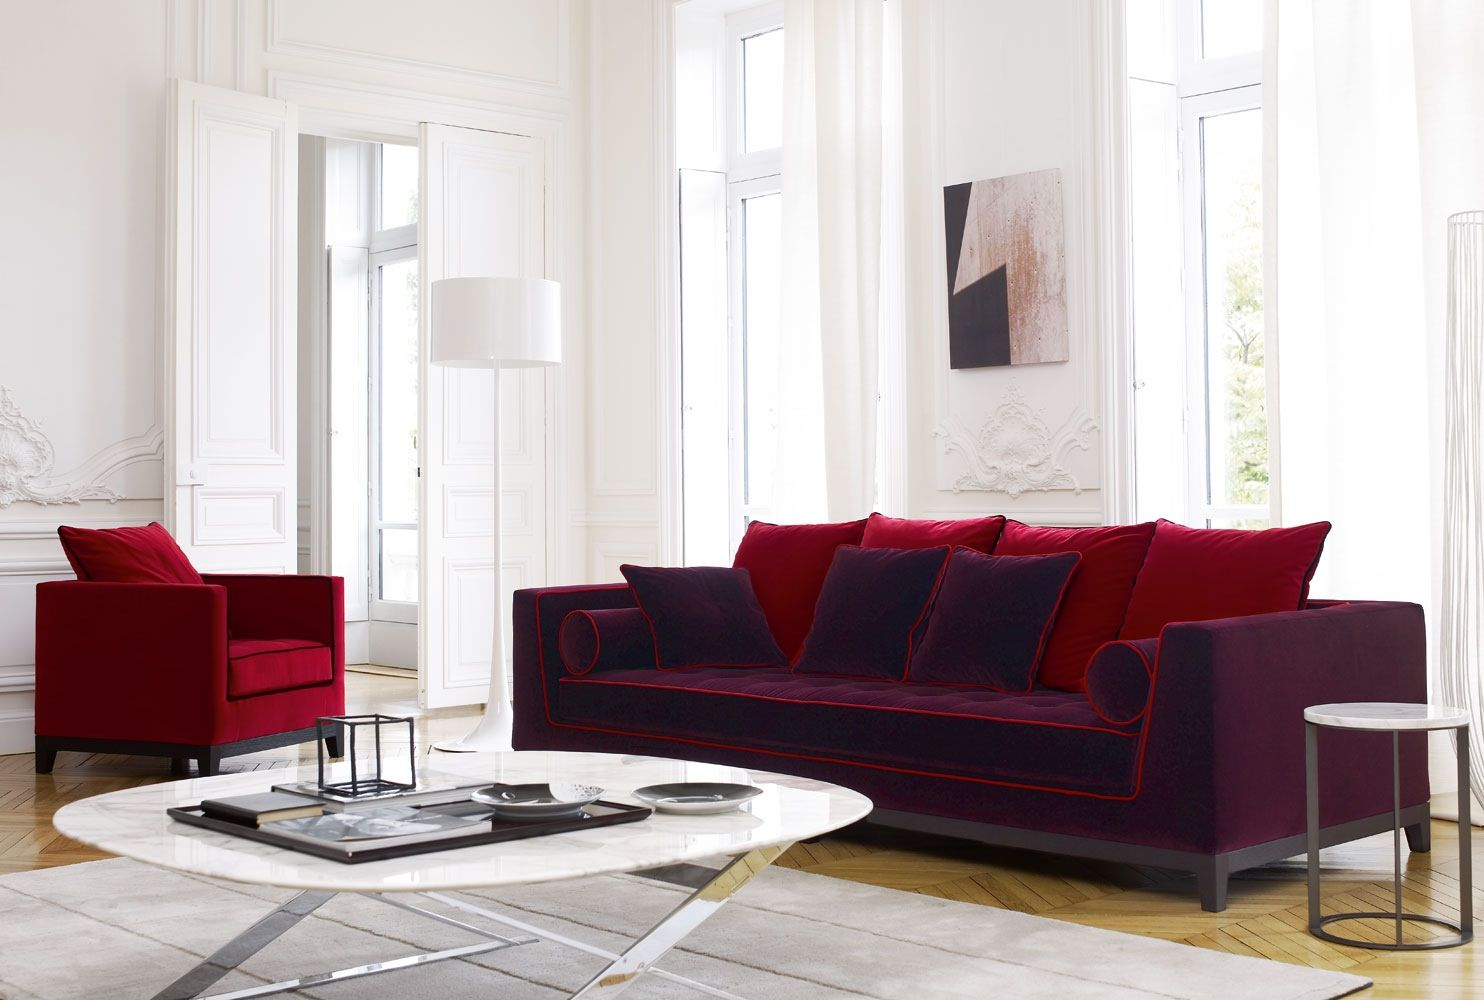 Living Room With Red Sofa | Living Room Design With Marvelous Dark Purple Sofa  Stunning Red